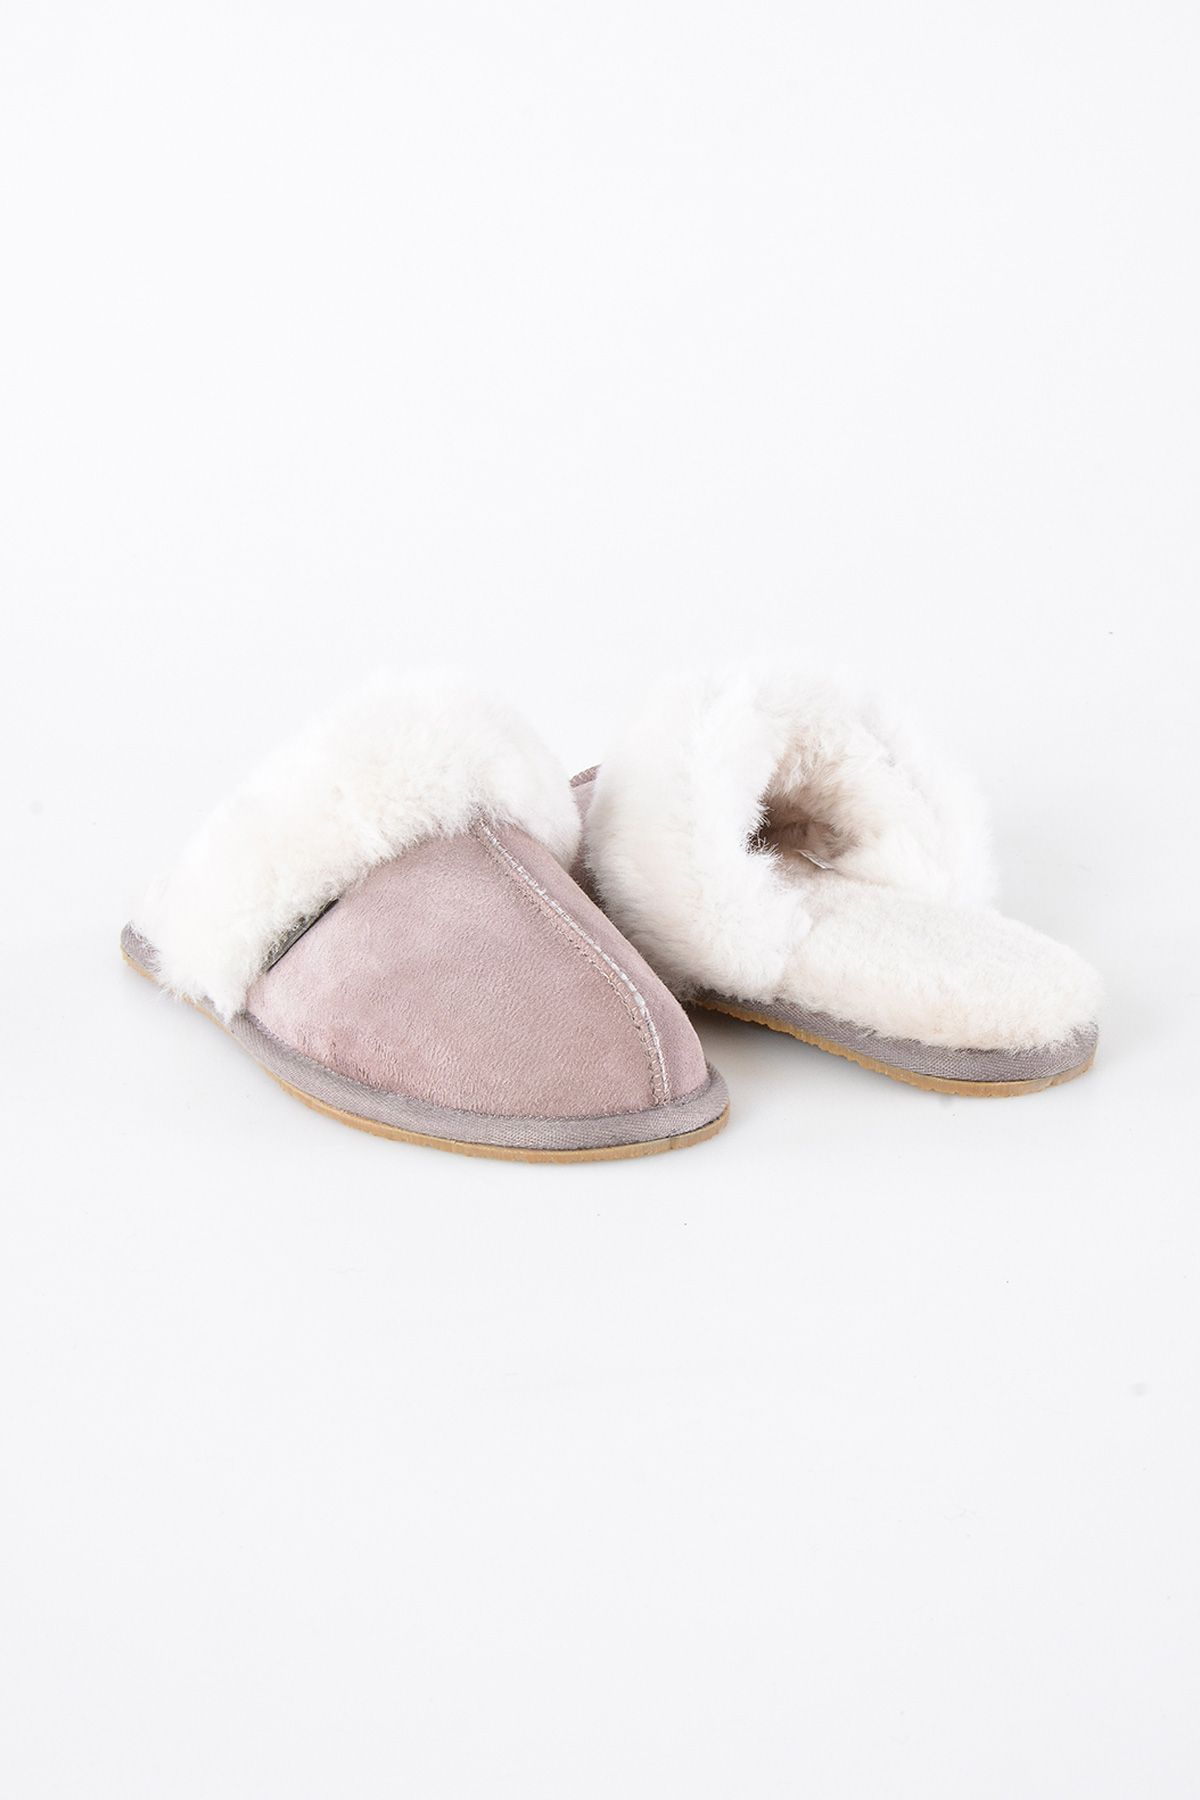 Pegia Women House Slippers From Genuine Suede And Sheepskin 191091 Powdery